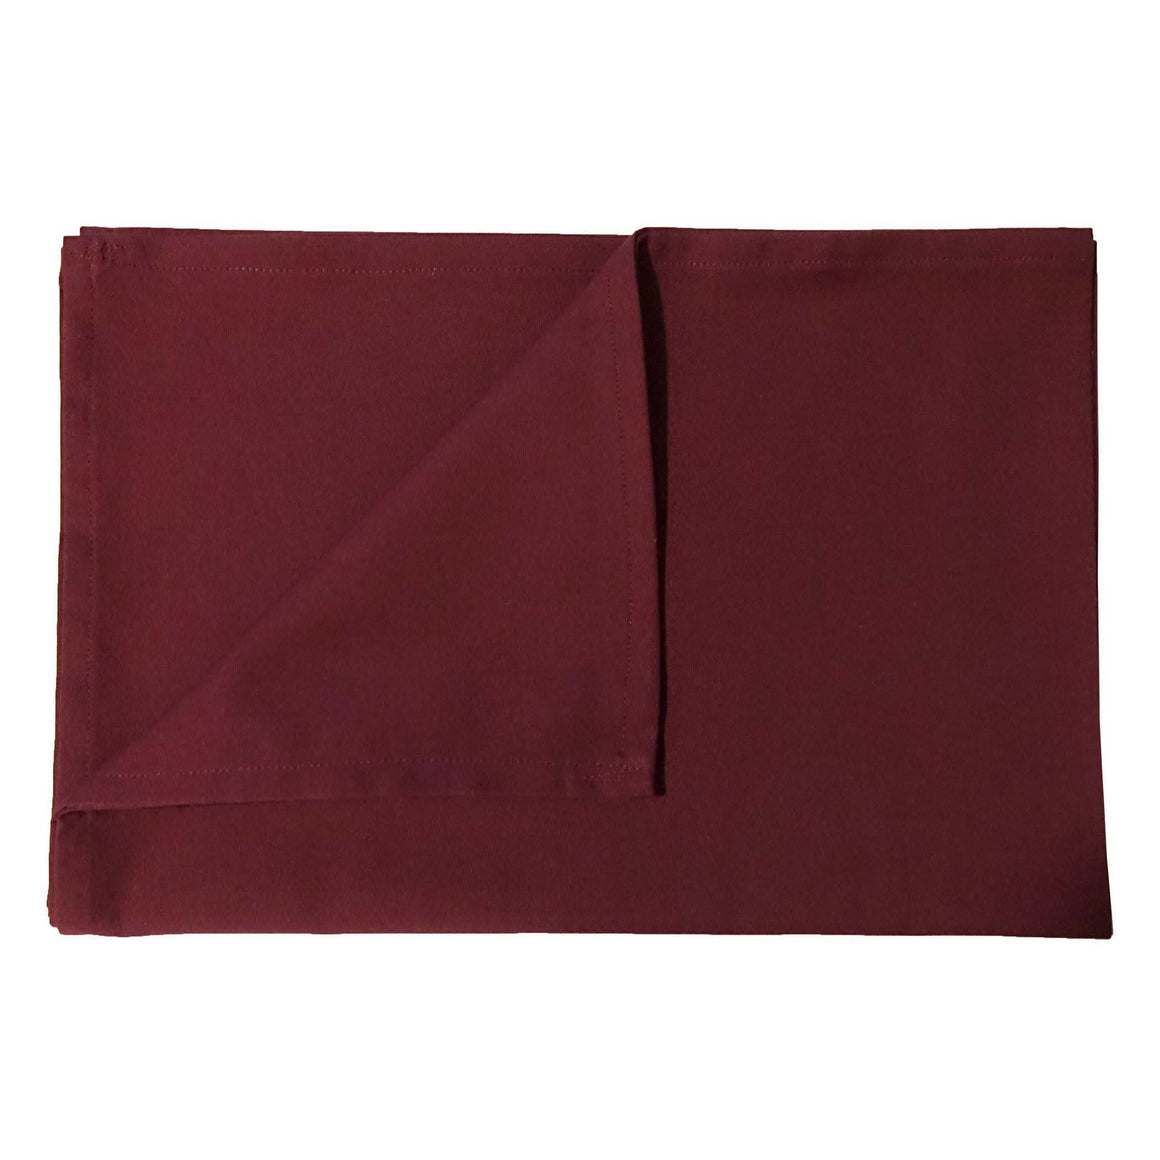 Communion Cloth (double-ply)